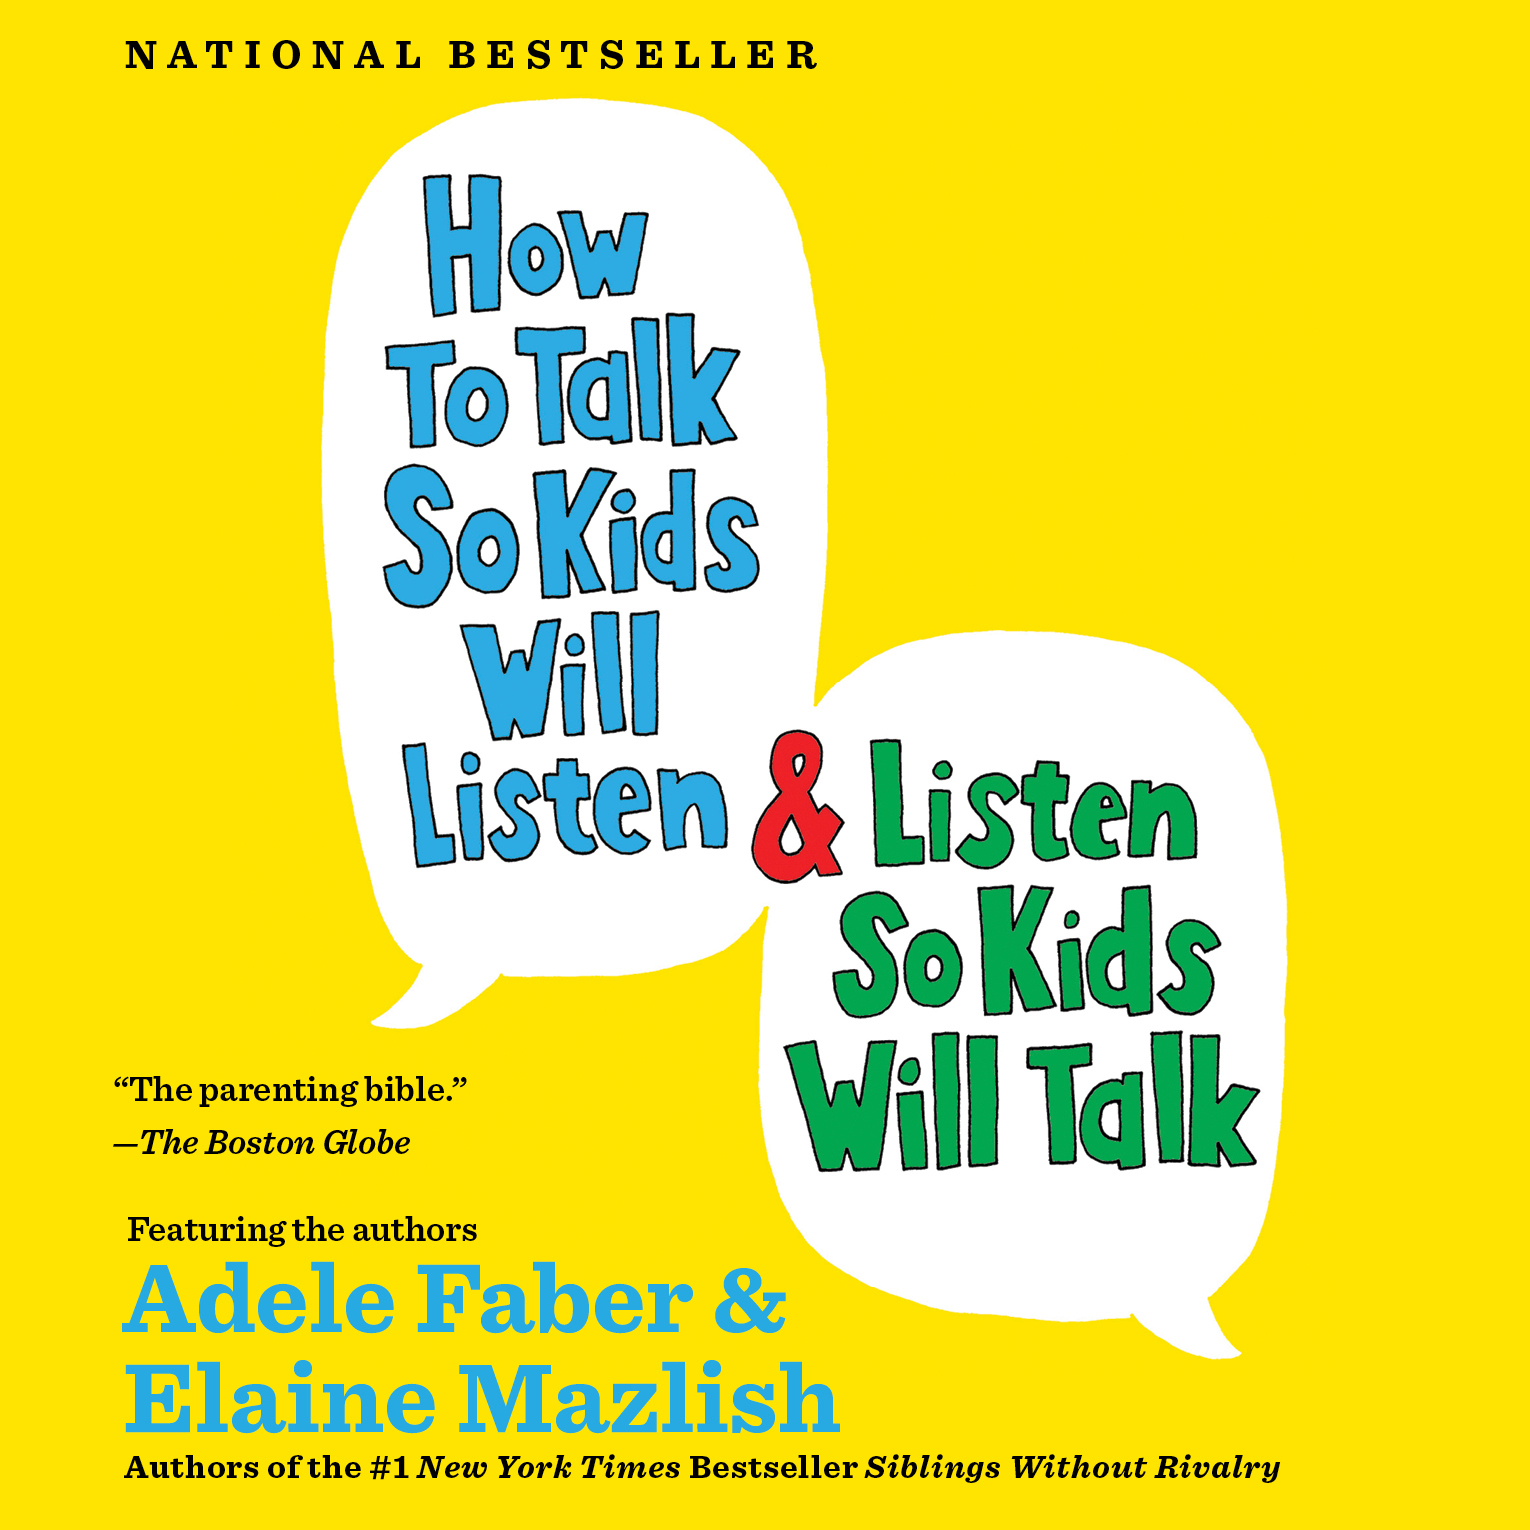 Amazing Parenting book! Highly recommend  :)